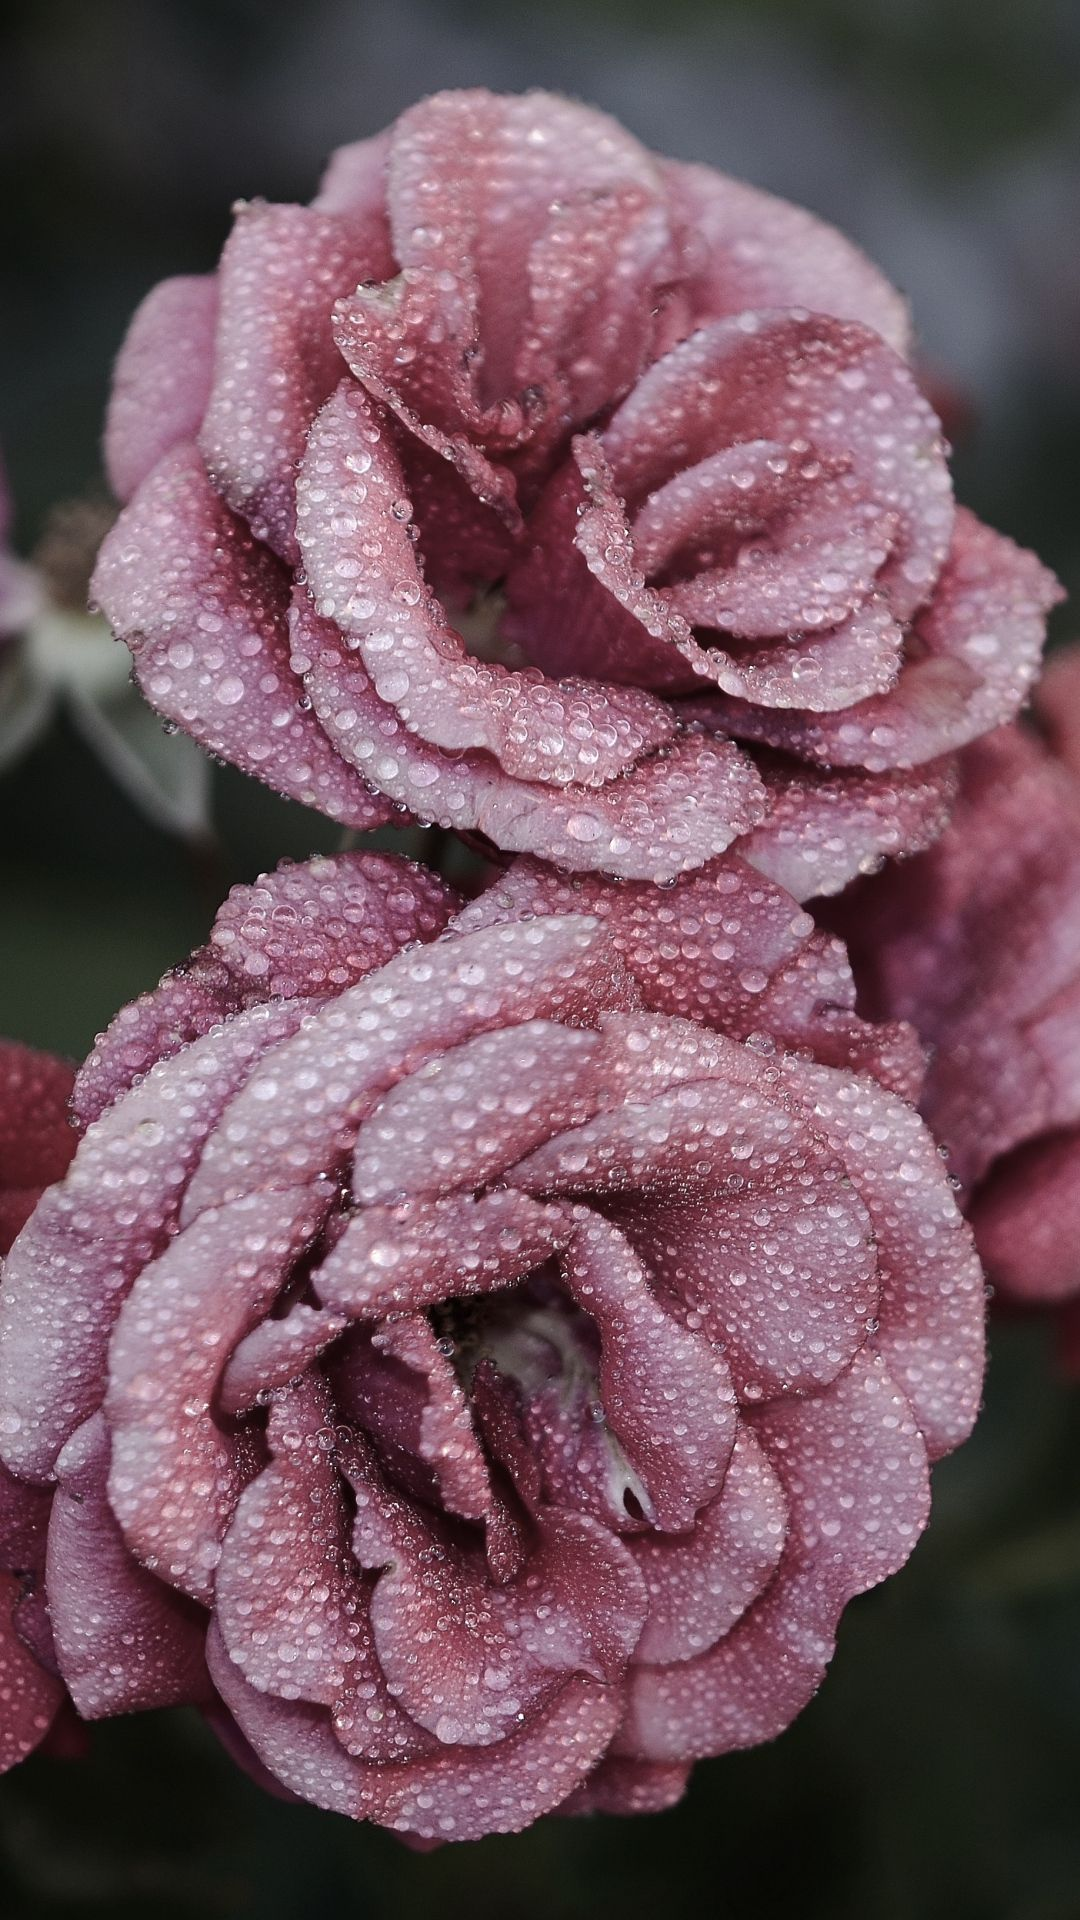 Roses Petals Drops Frost iPhone 6 plus wallpaper